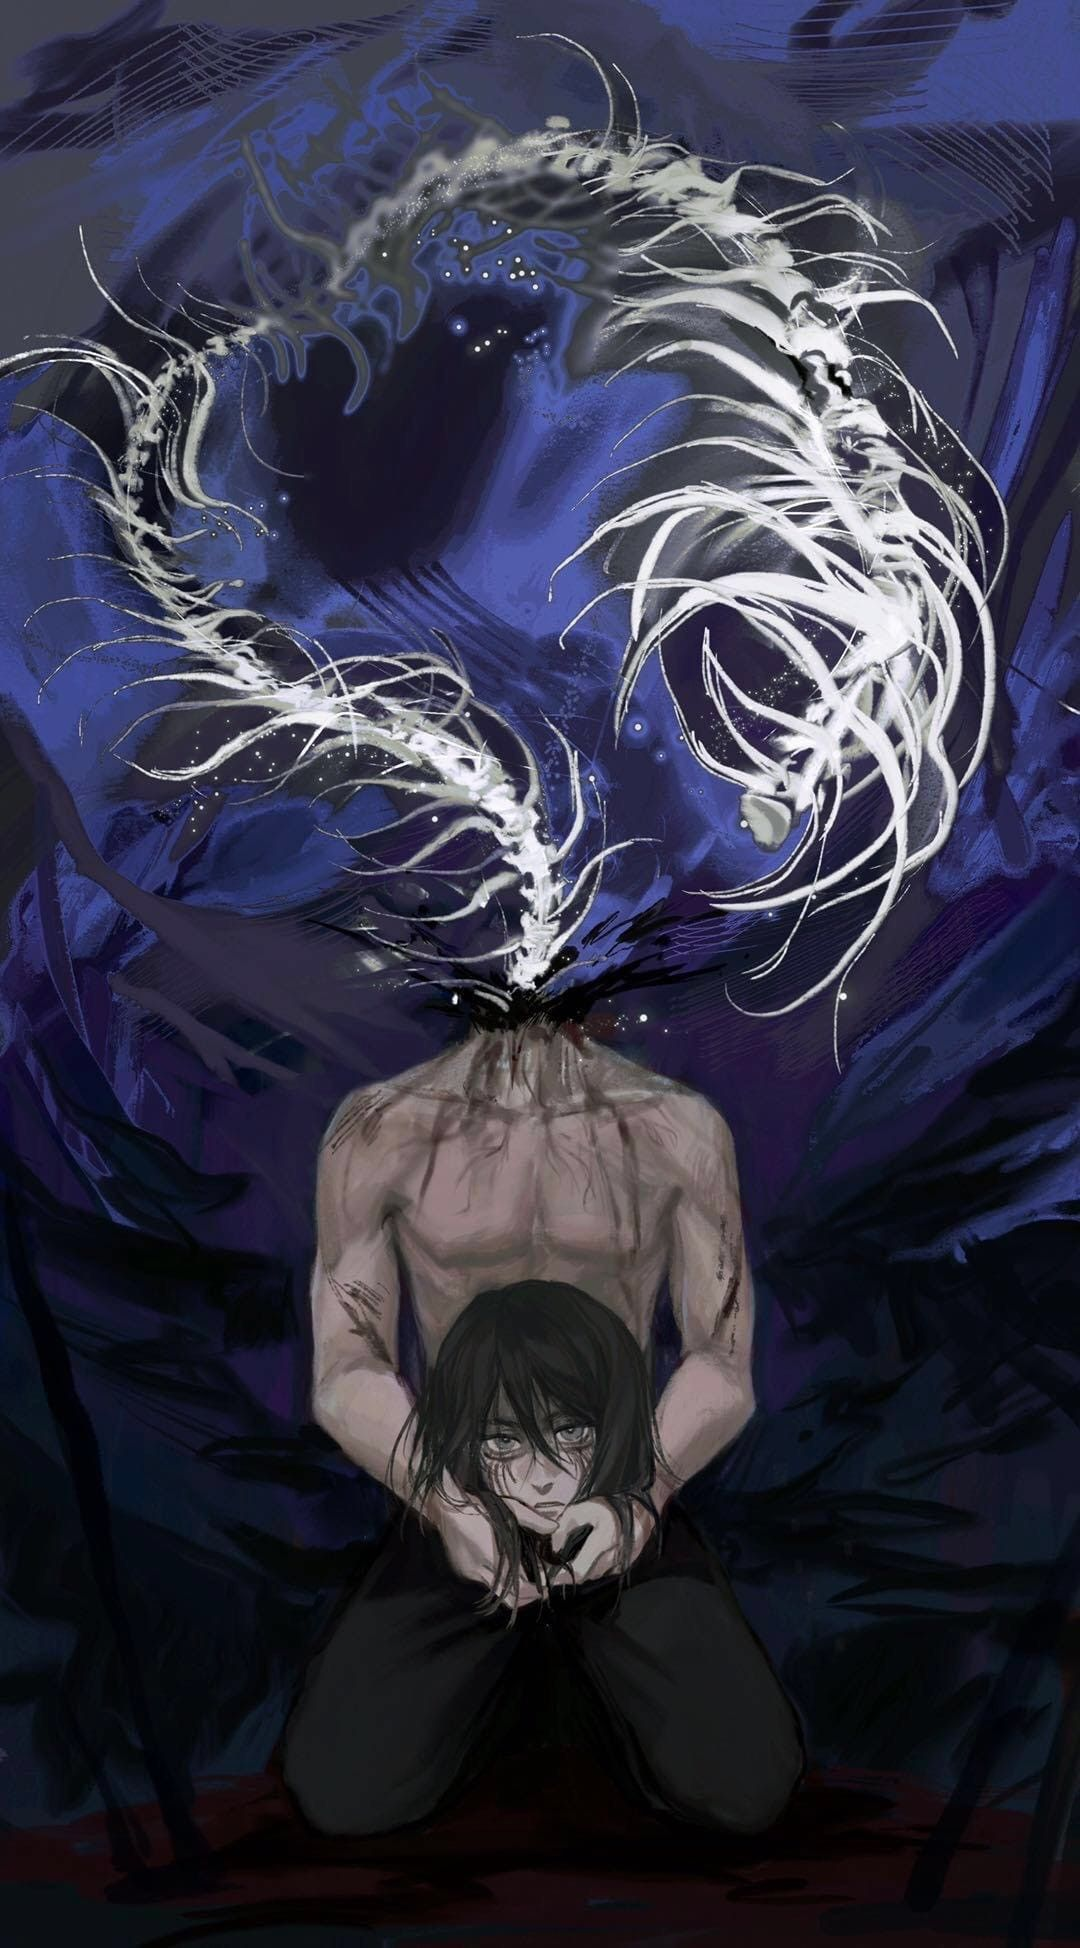 Pin By Miki Matsumoto On Anime In 2020 Attack On Titan Anime Attack On Titan Art Anime Art Beautiful